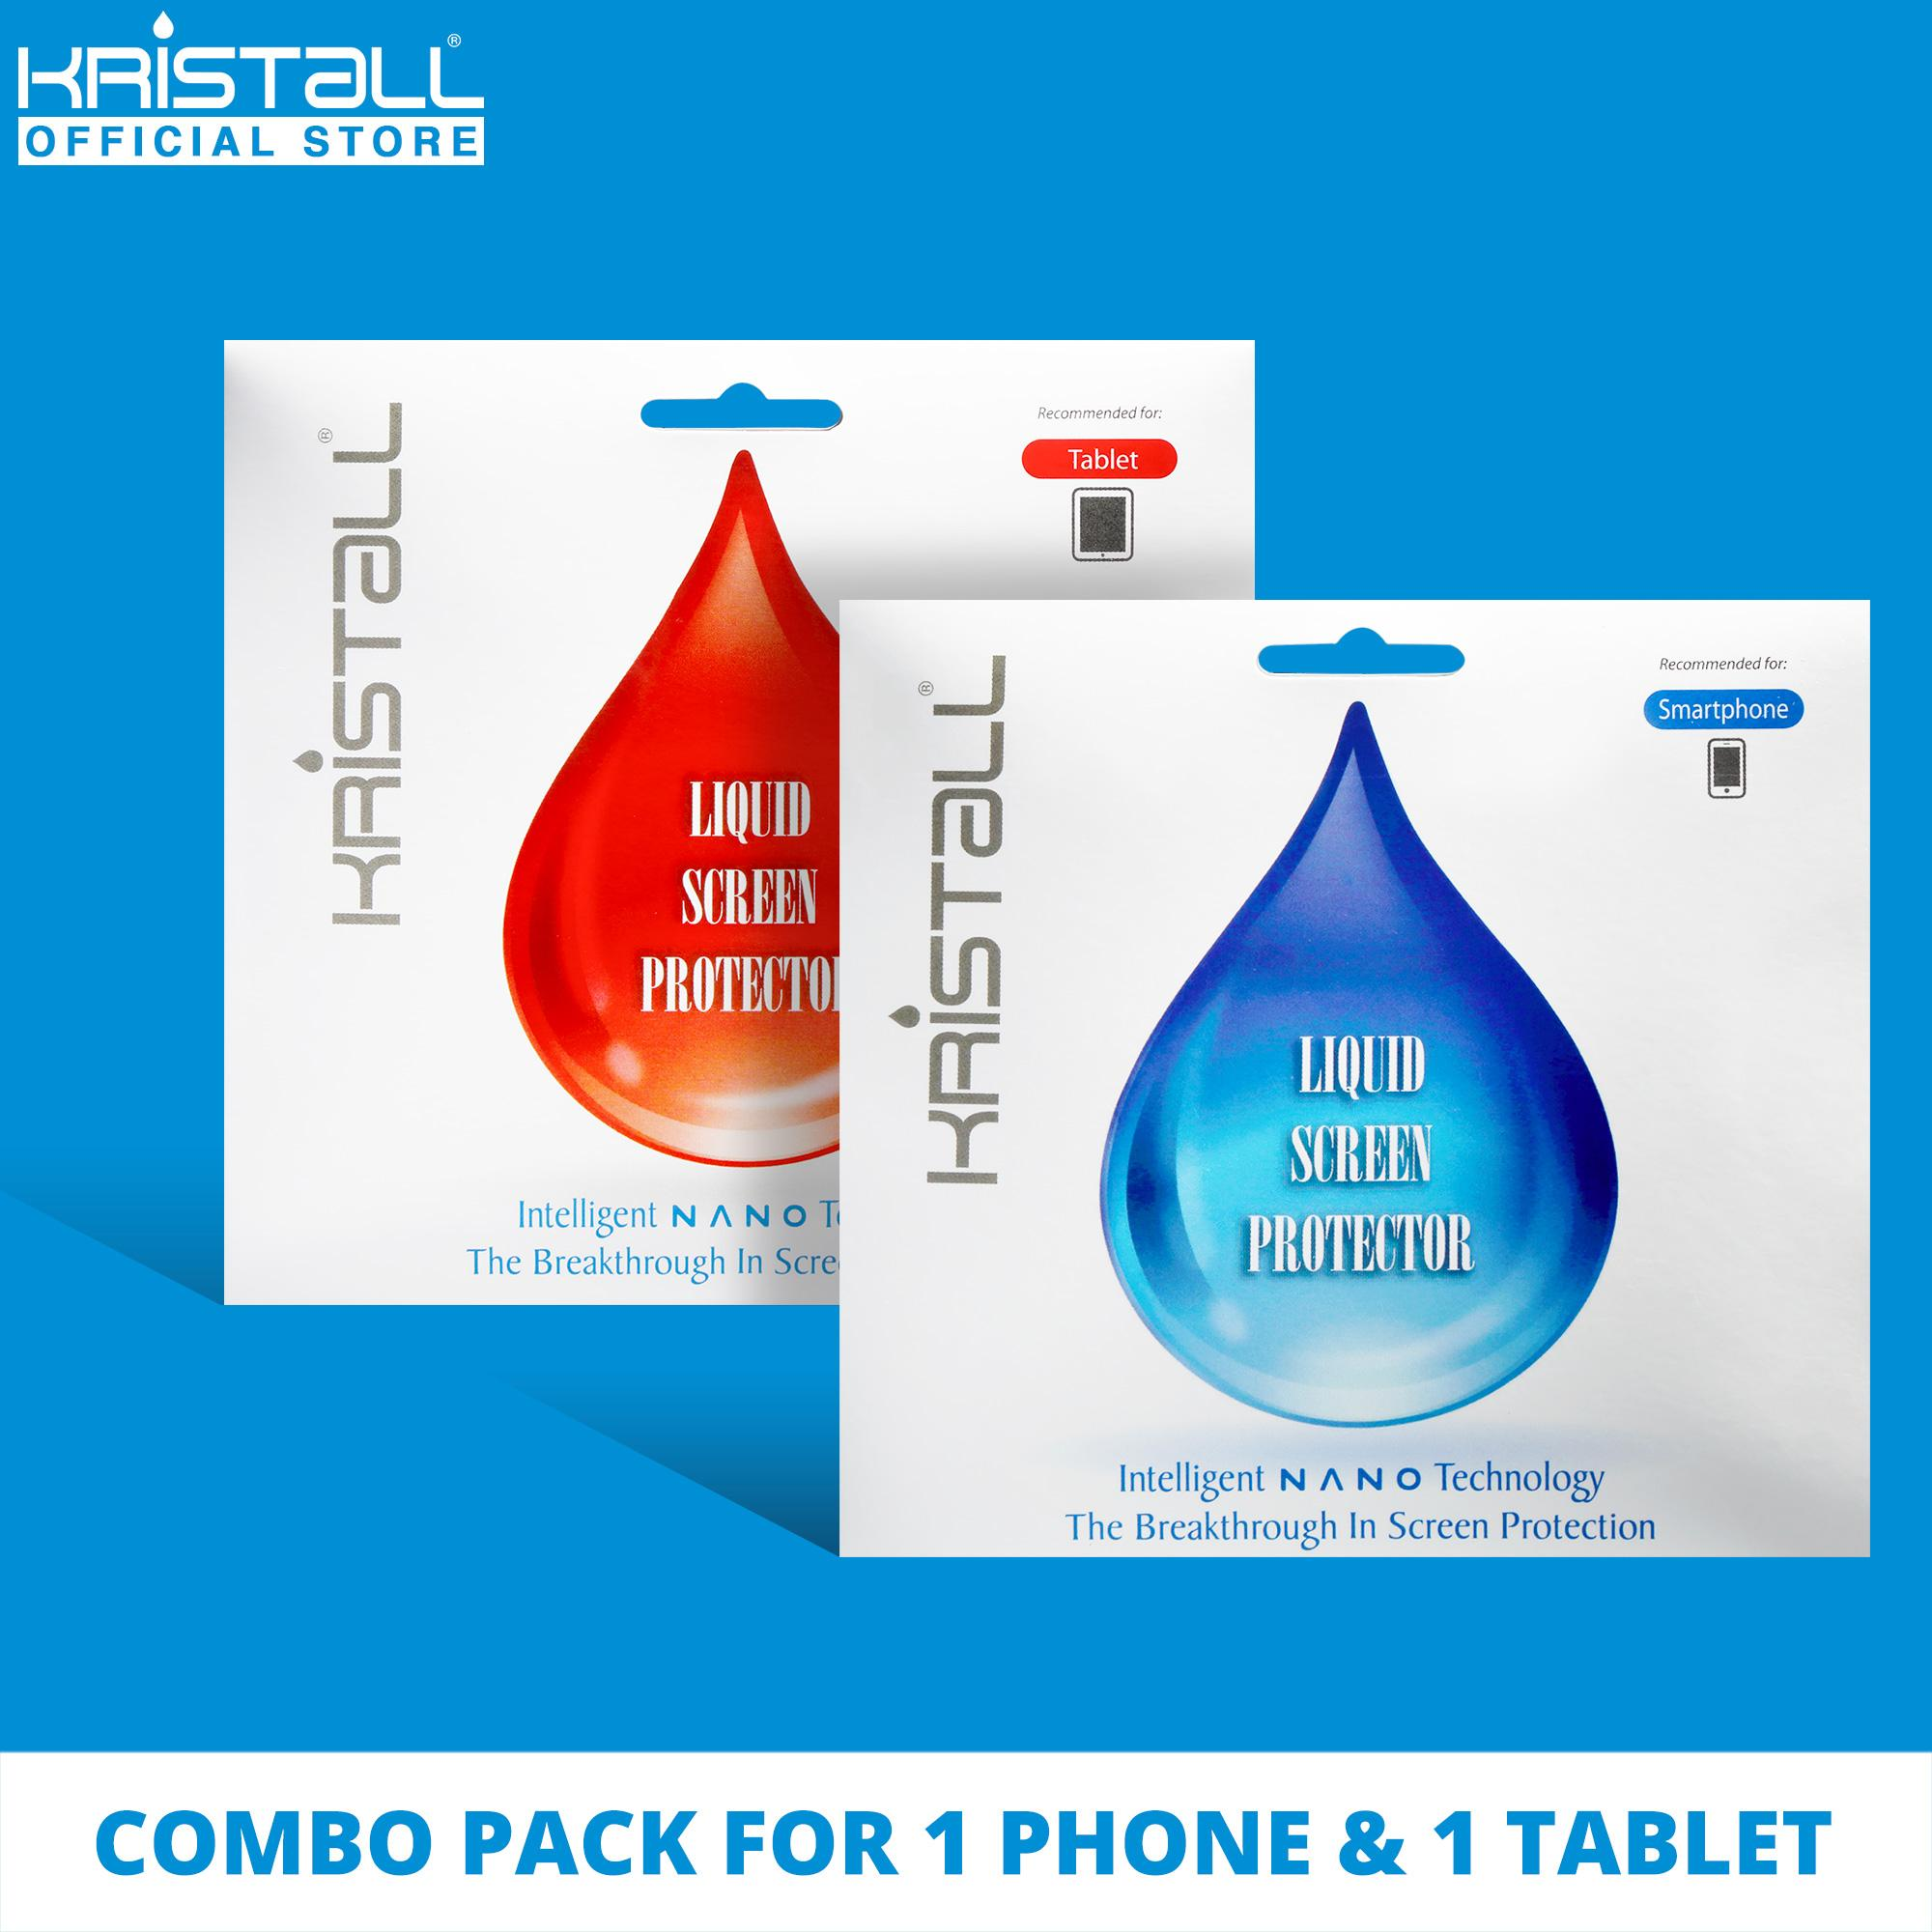 [COMBO PACK] Kristall® Nano Liquid Screen Protector for 1 SMARTPHONE & 1 TABLET - 9H Hardness, Edge to Edge Full Coverage, Scratch Resistant, EASY to Apply, Bubbles-FREE Screen Protector